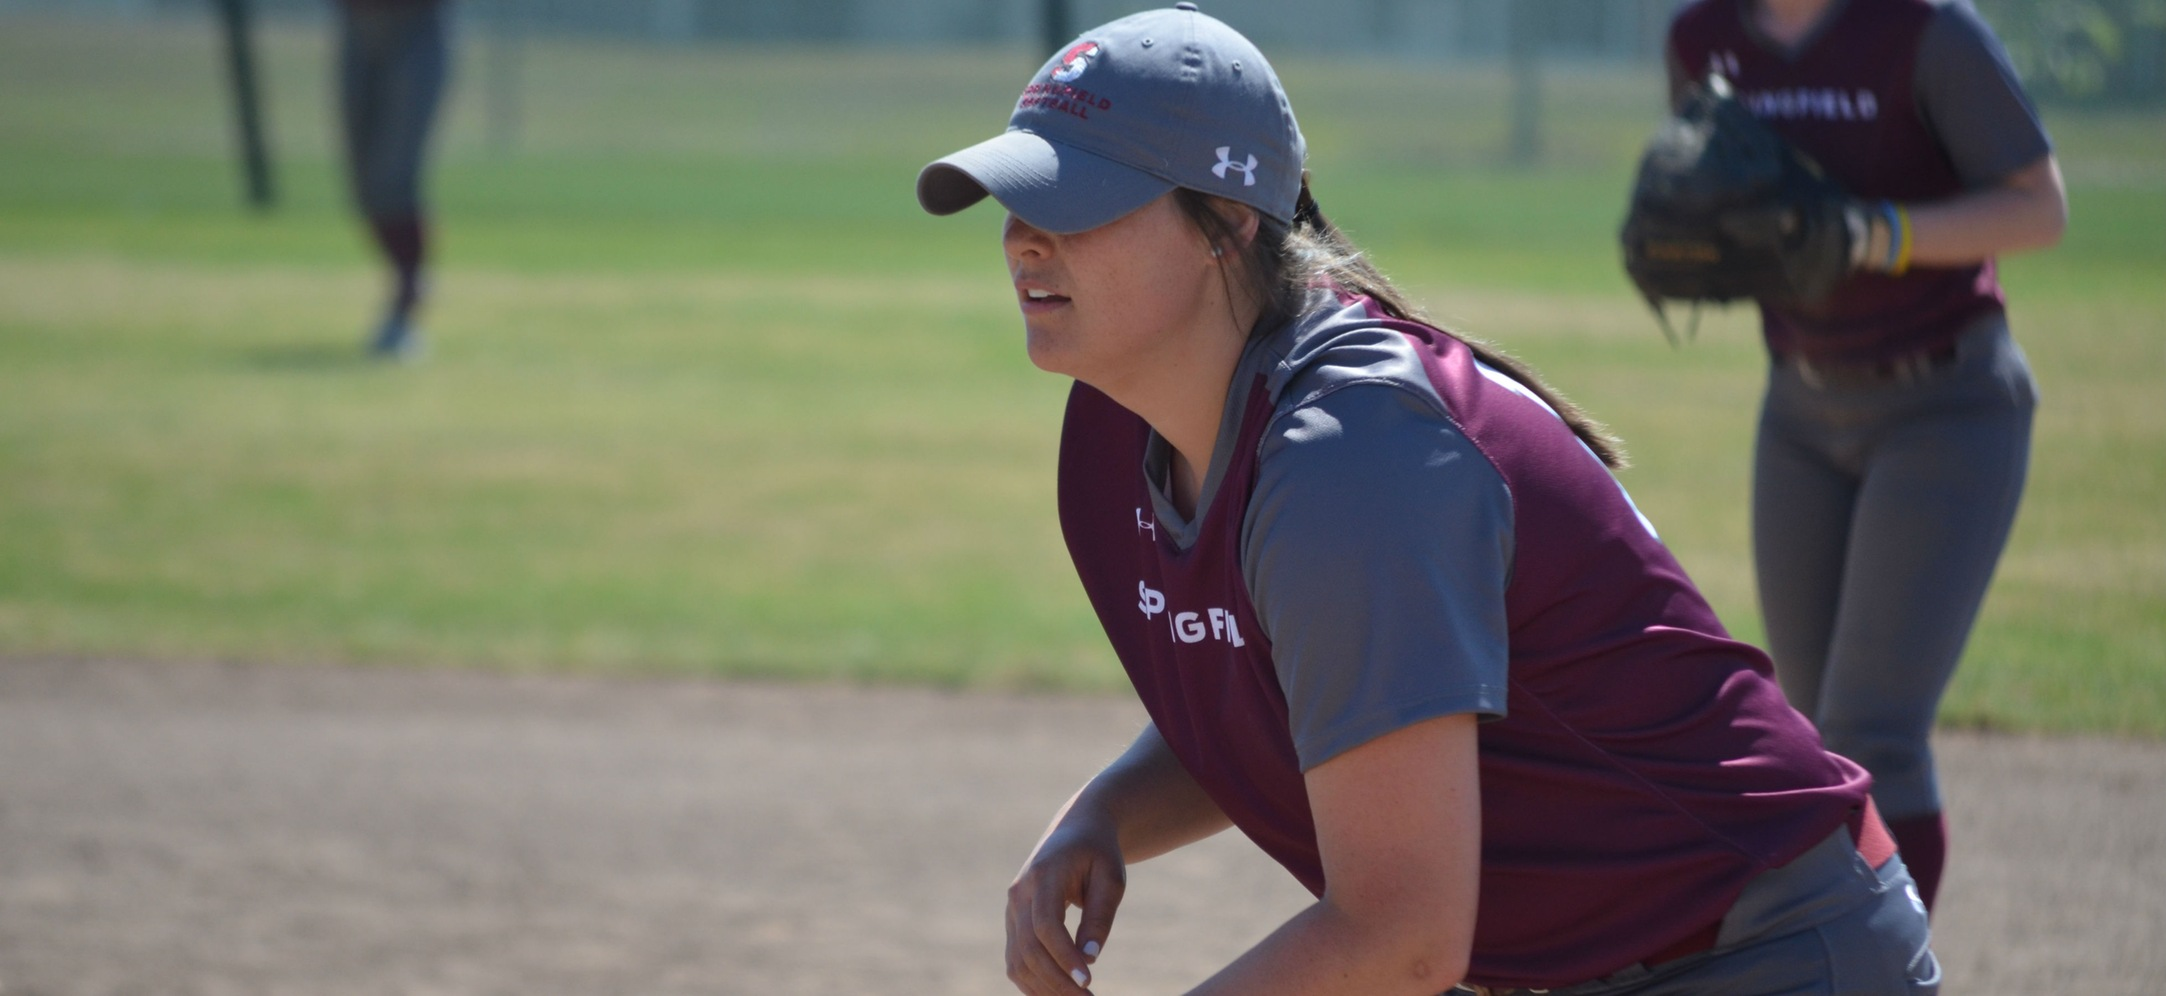 Softball Splits With Wooster and William Paterson; Drobiak Reaches 100-Career RBI